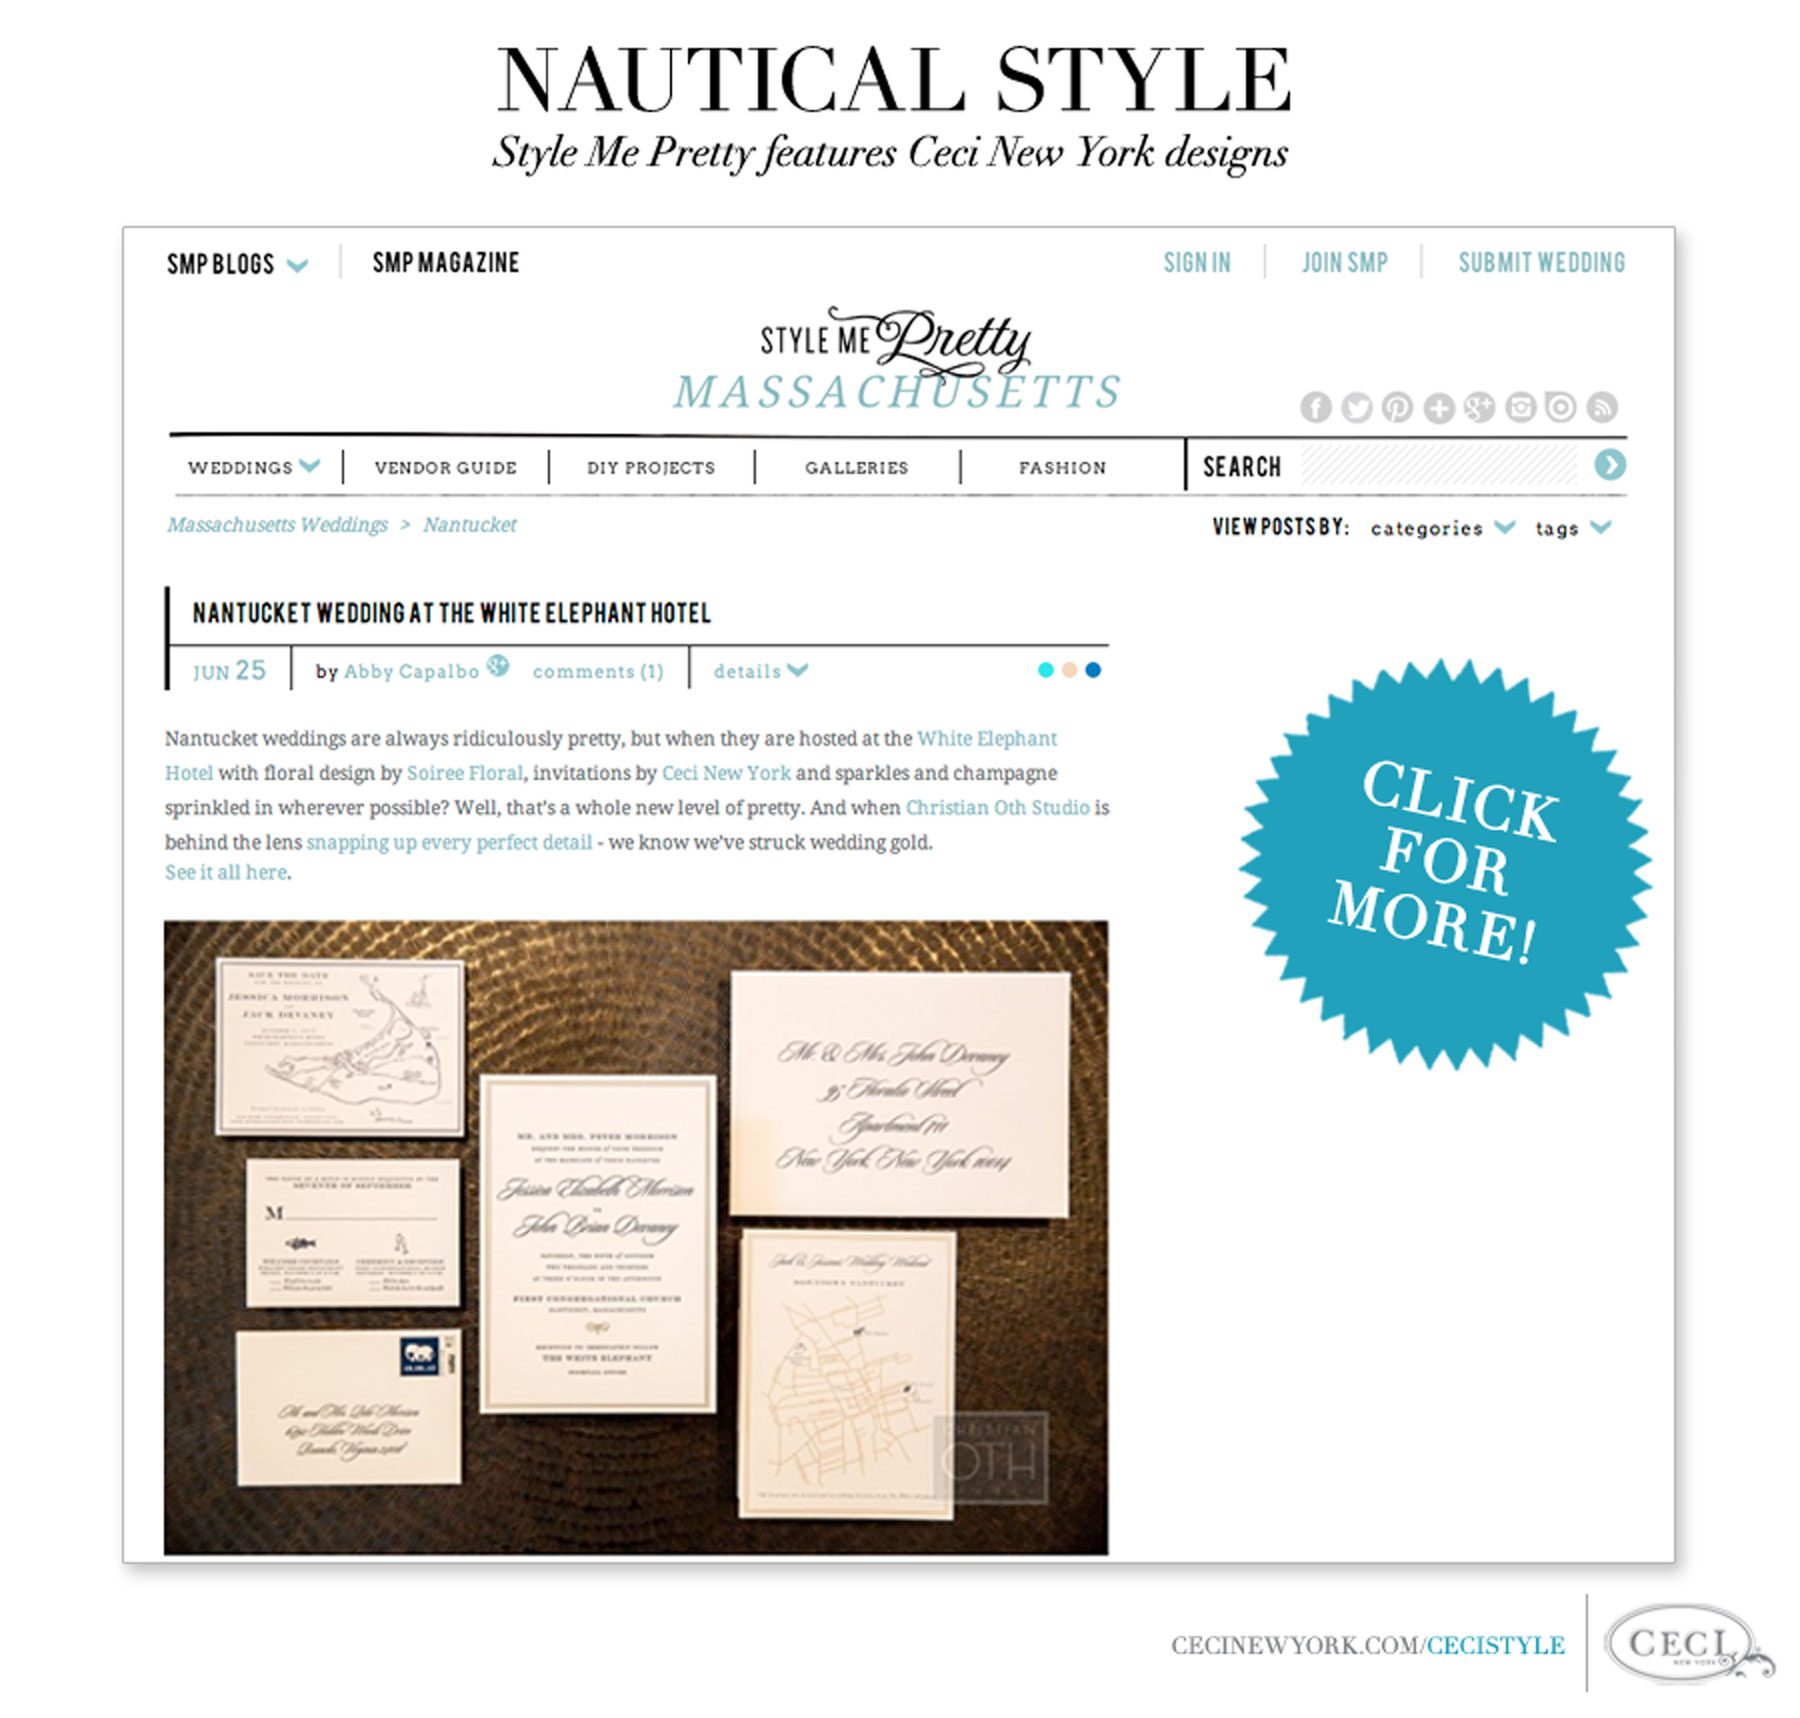 Nautical Style - Style Me Pretty features Ceci New York designs